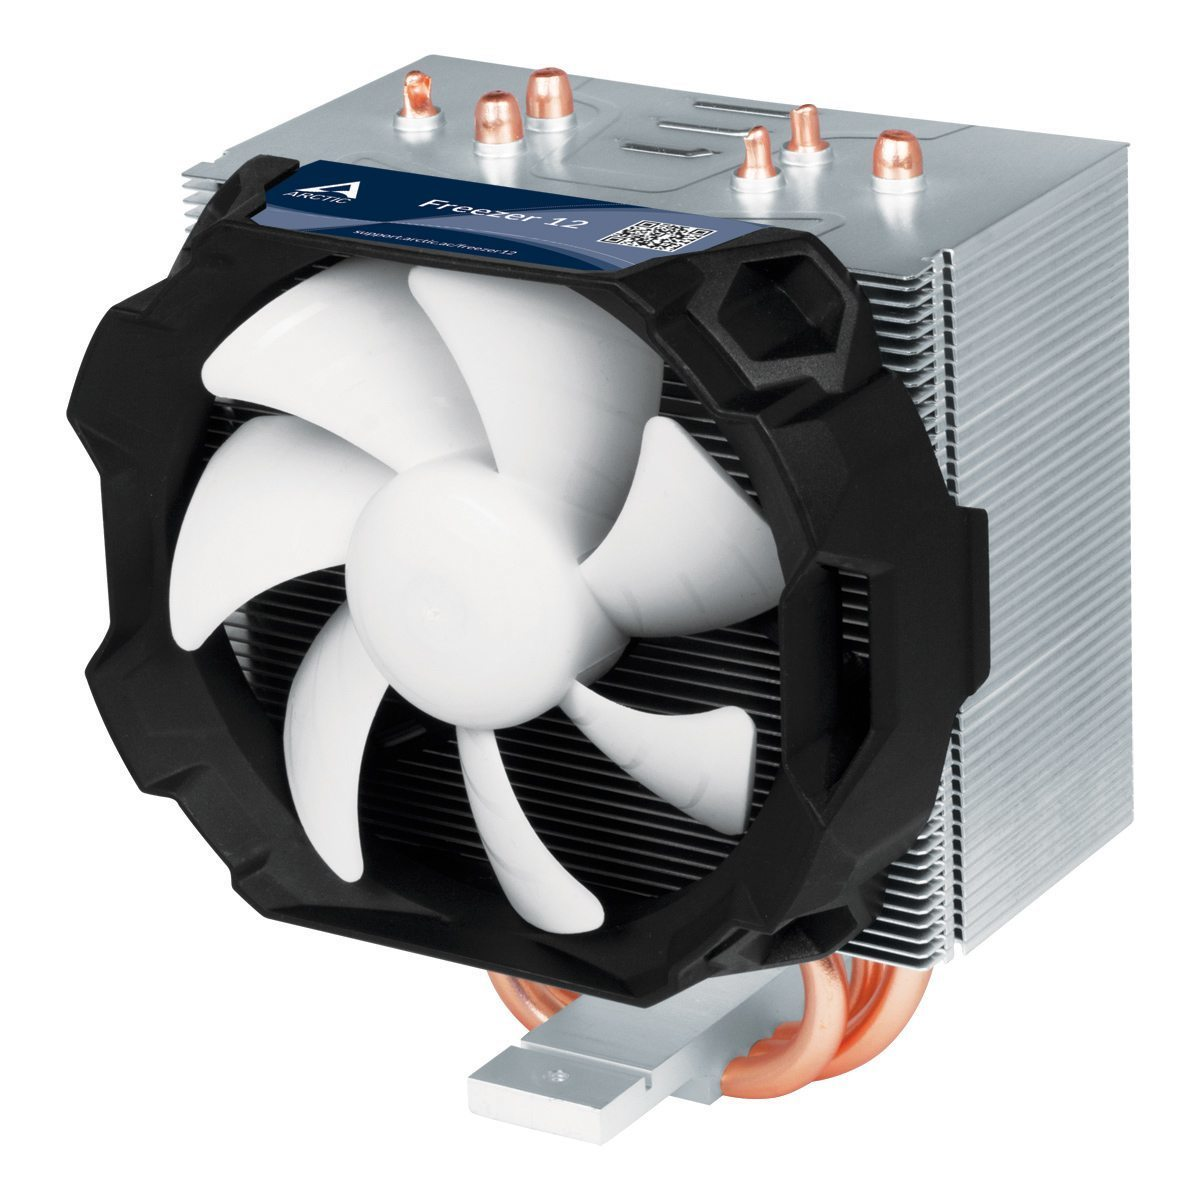 CPU Cooler Freezer 12 - 1150/1151/1155/1156/2011/AM4